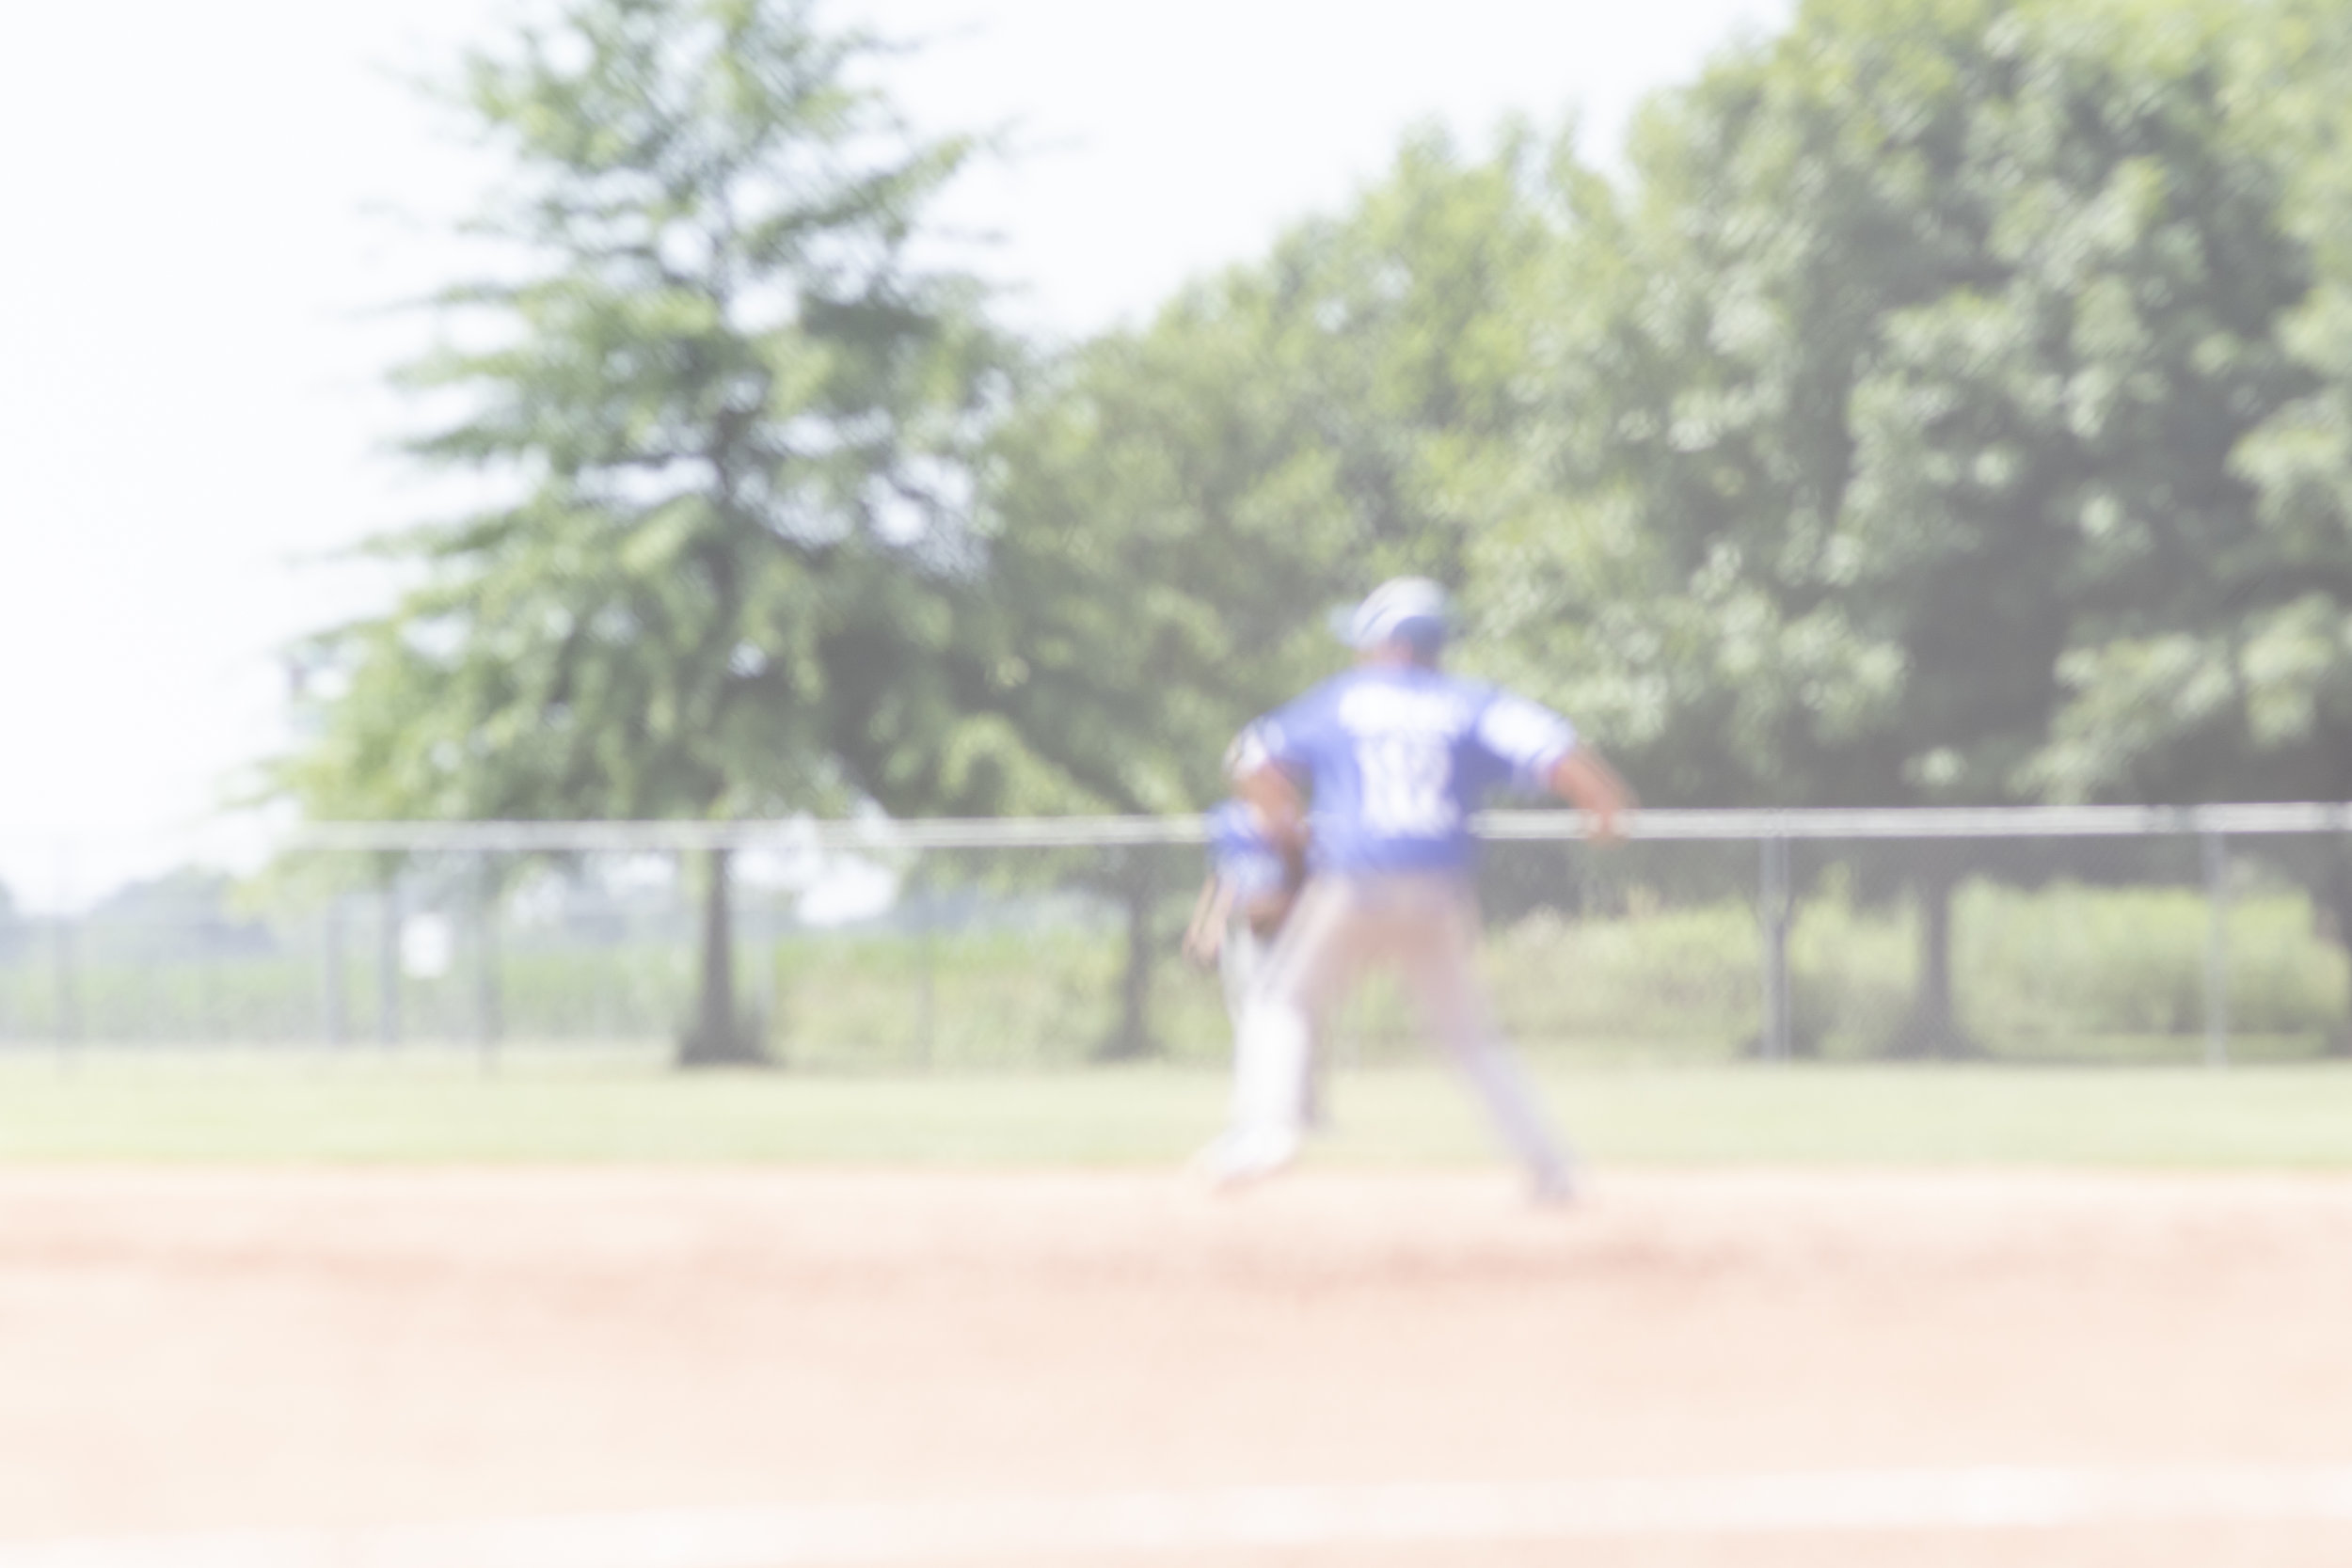 Another baseball image where the action was so fast that the camera didn't know where to focus, so it didn't…